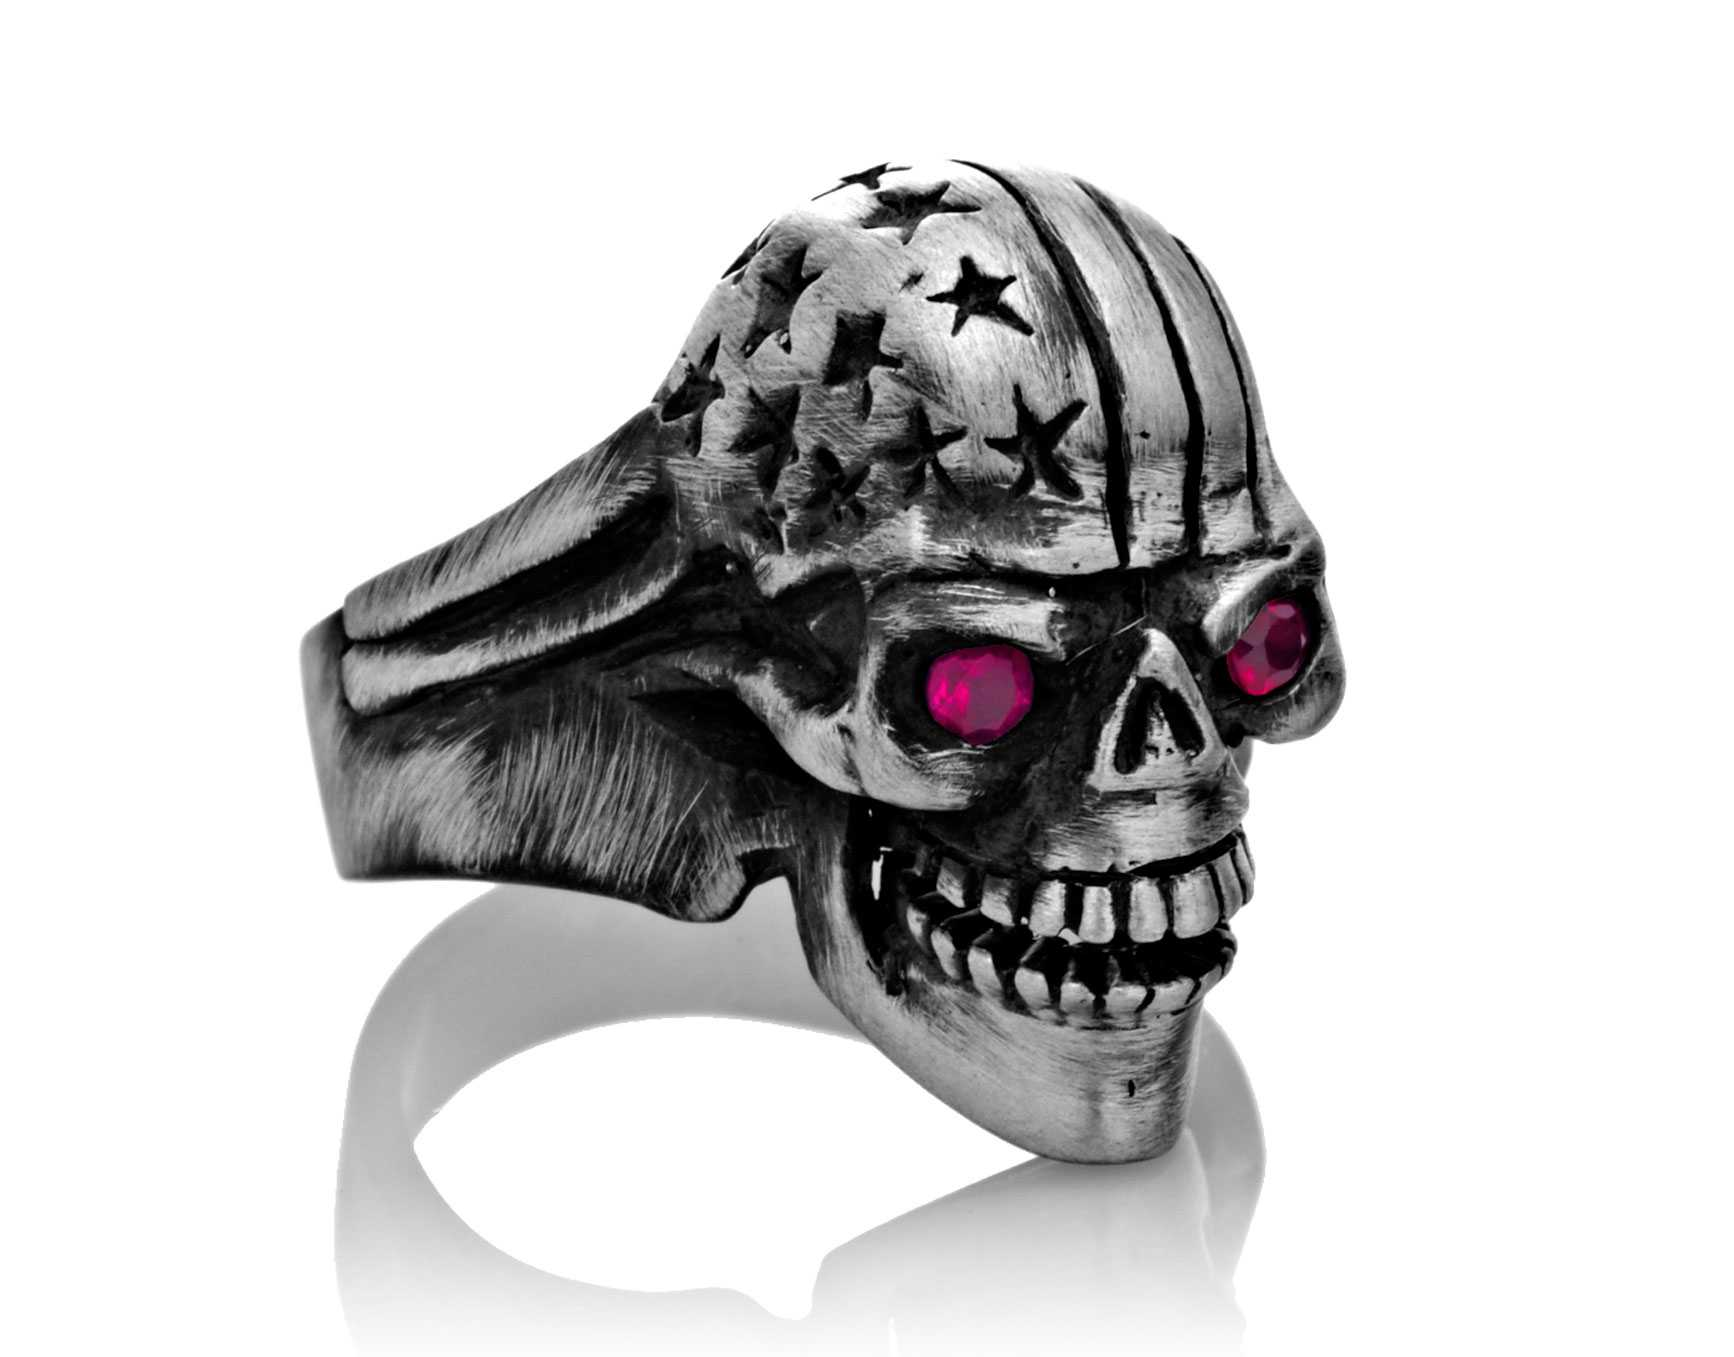 RG106-B The Freedom Rider Jewelry Skull Ring (Front Right Side View) in Sterling Silver with Red Stones, designed by Steve Soffa